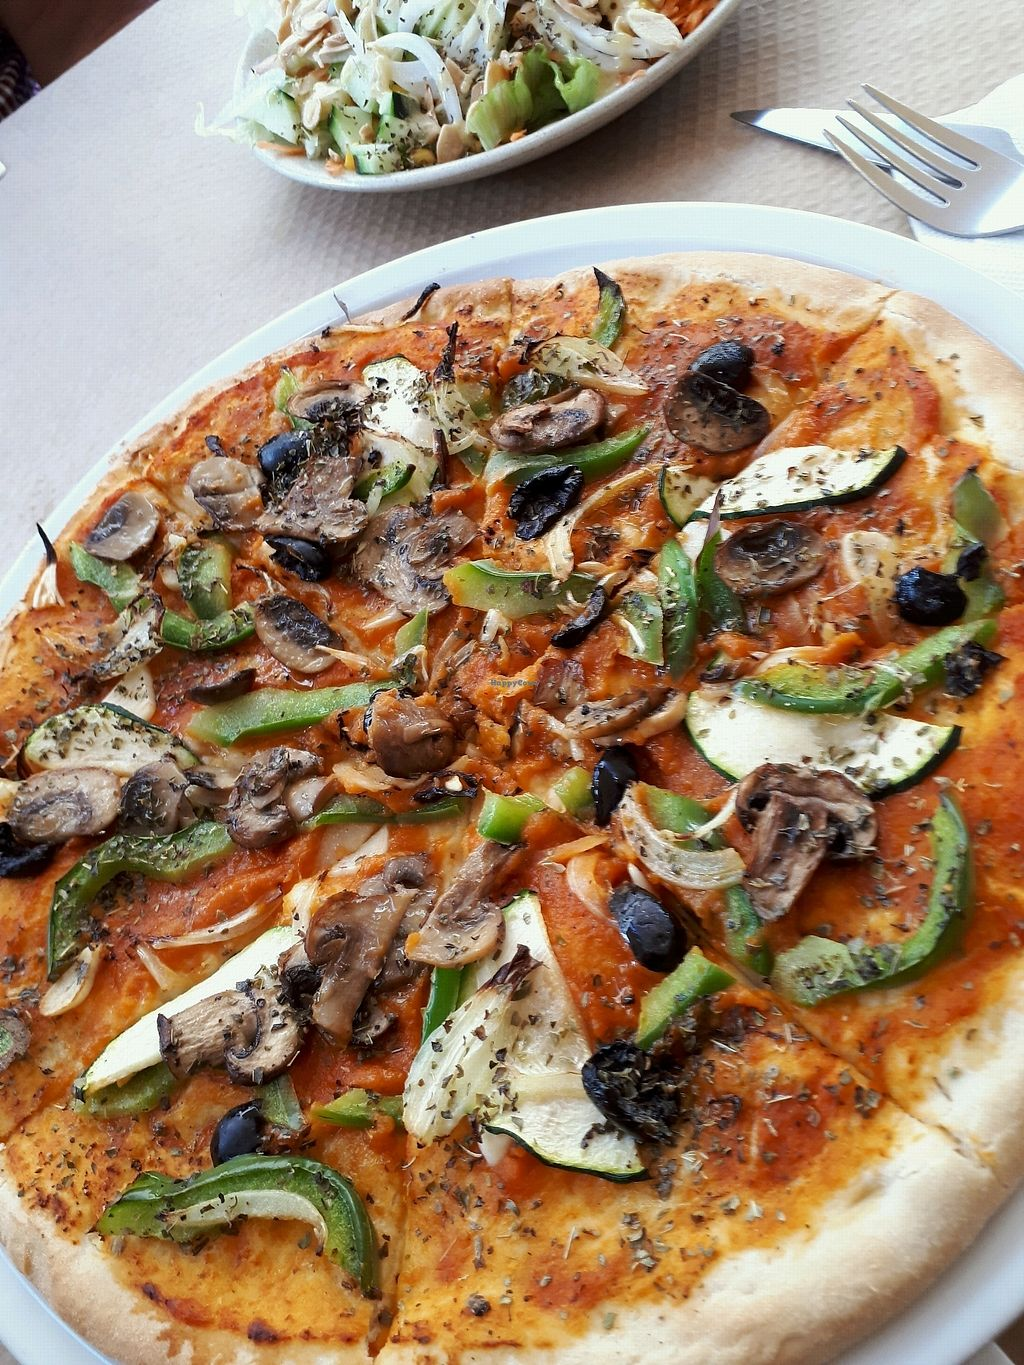 "Photo of Cafe e Companhia  by <a href=""/members/profile/JanyKosa"">JanyKosa</a> <br/>vegan Pizza  <br/> April 18, 2018  - <a href='/contact/abuse/image/78197/387708'>Report</a>"